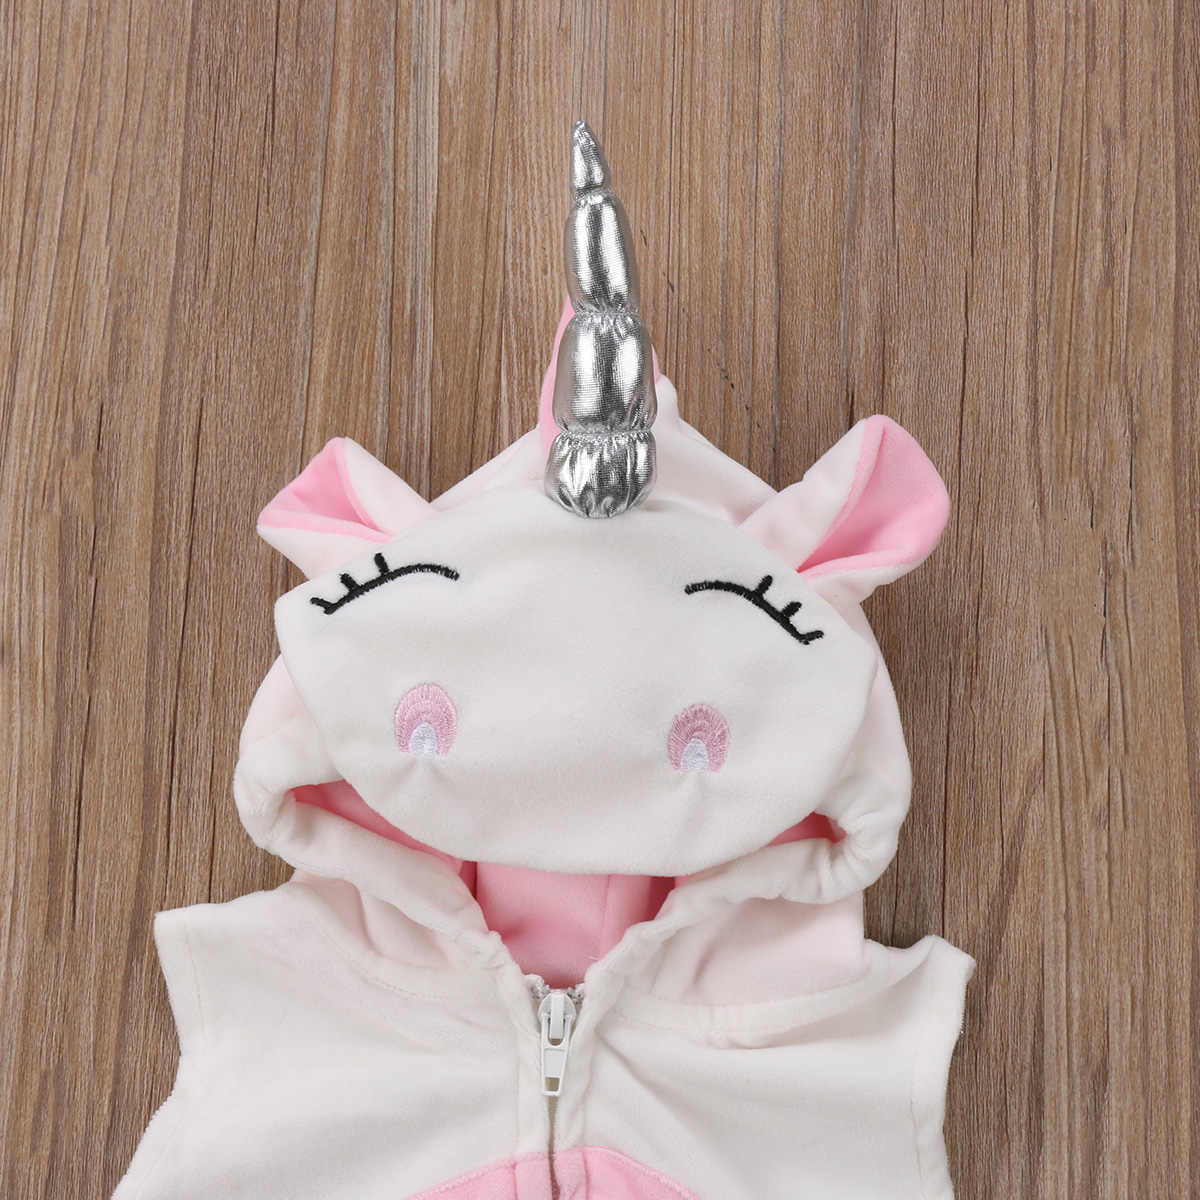 53375f55b759 Detail Feedback Questions about Cute Unicorn Baby Kids Girl Fleece ...